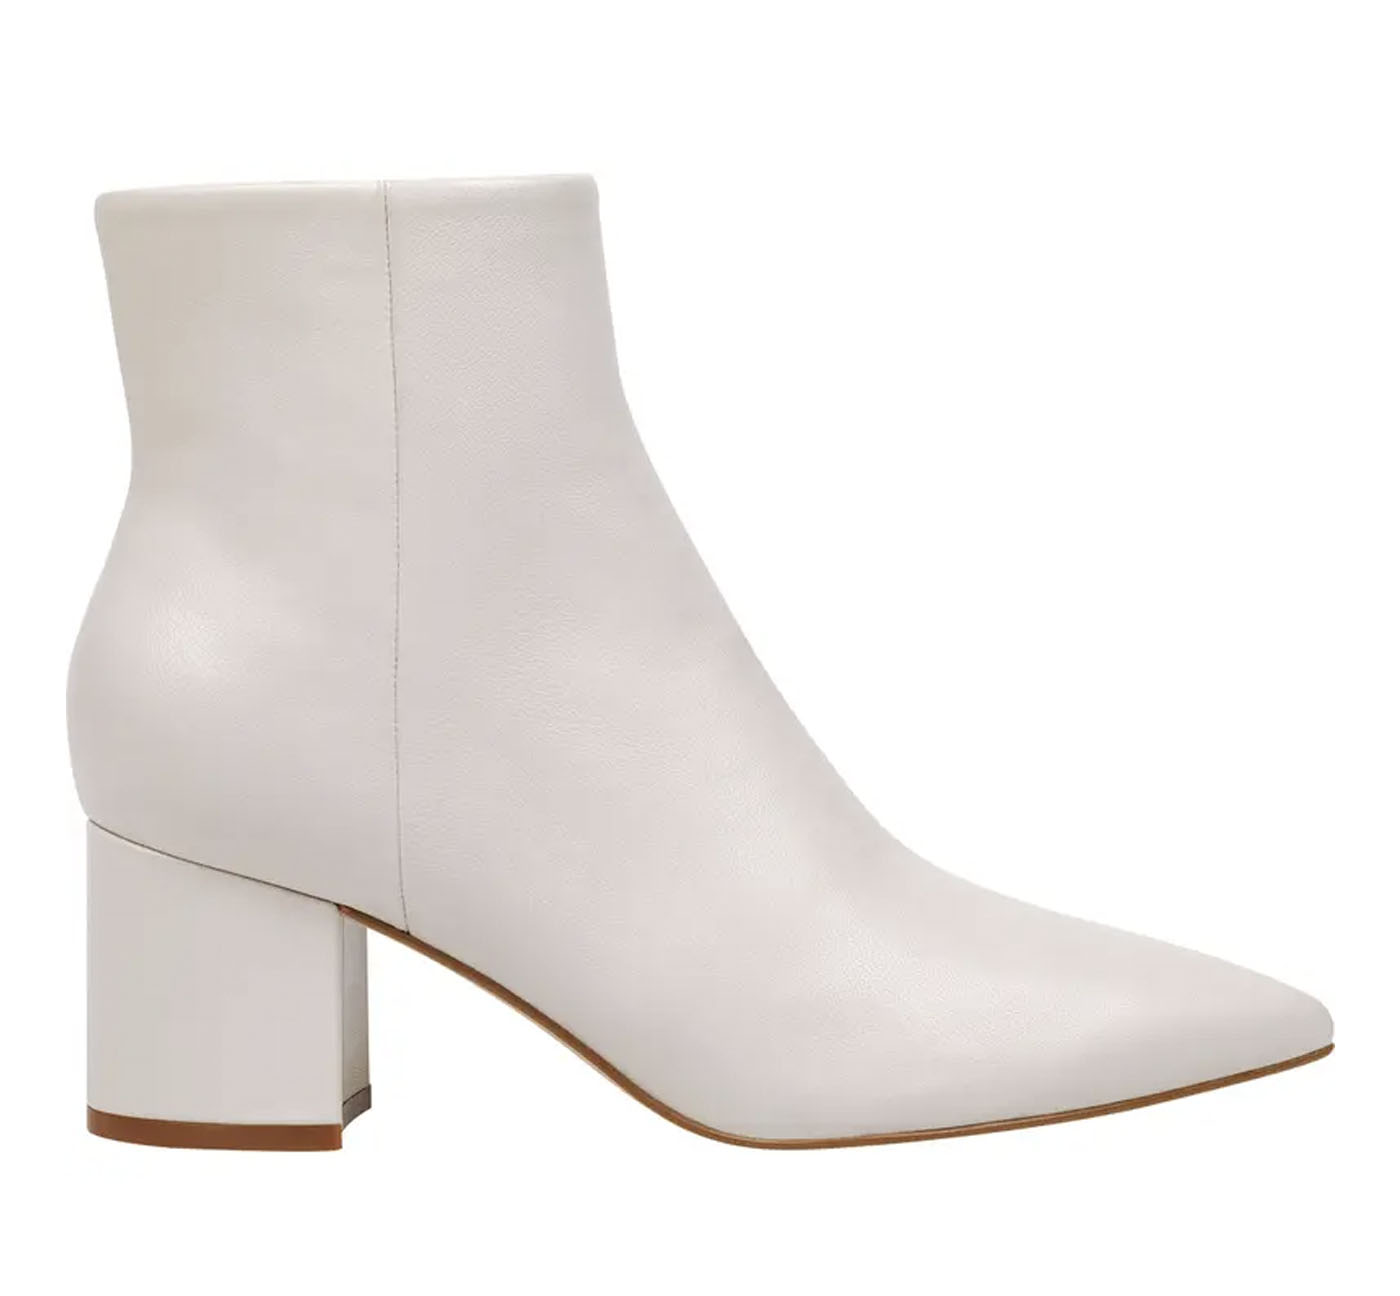 classic white bridal bootie for wedding